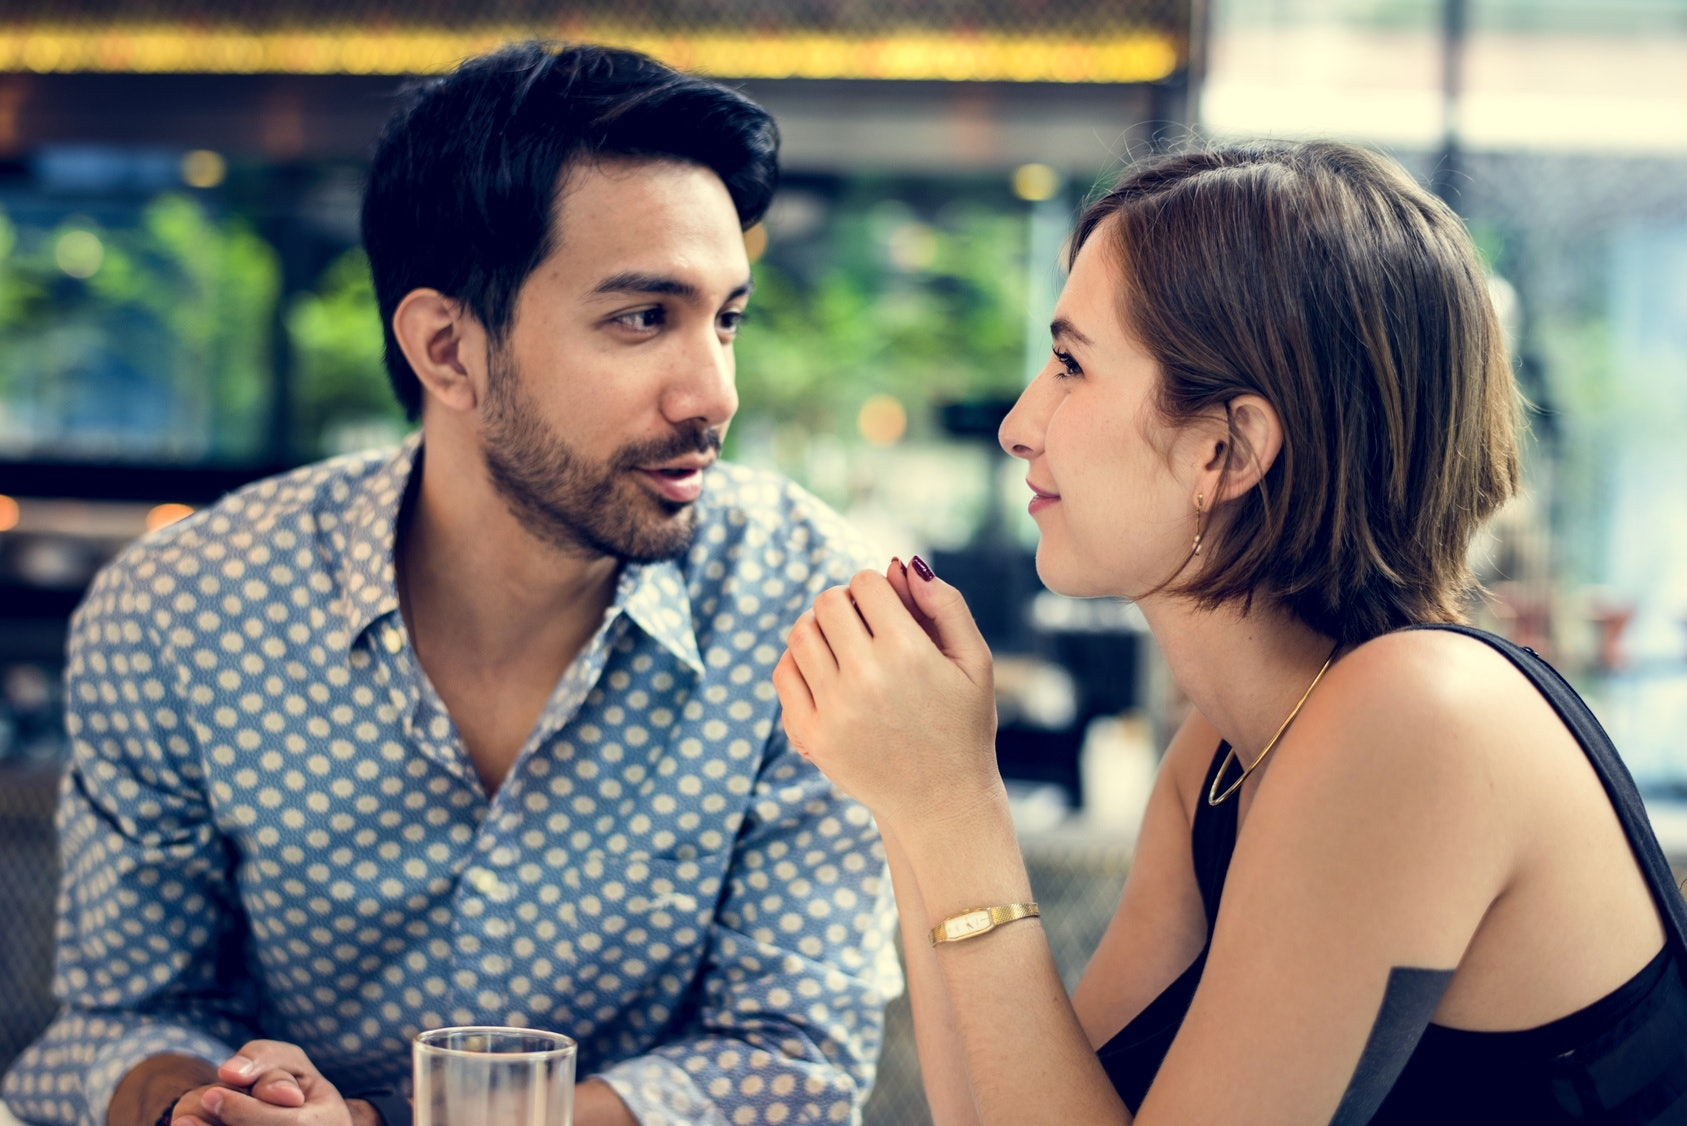 How long should a first date be